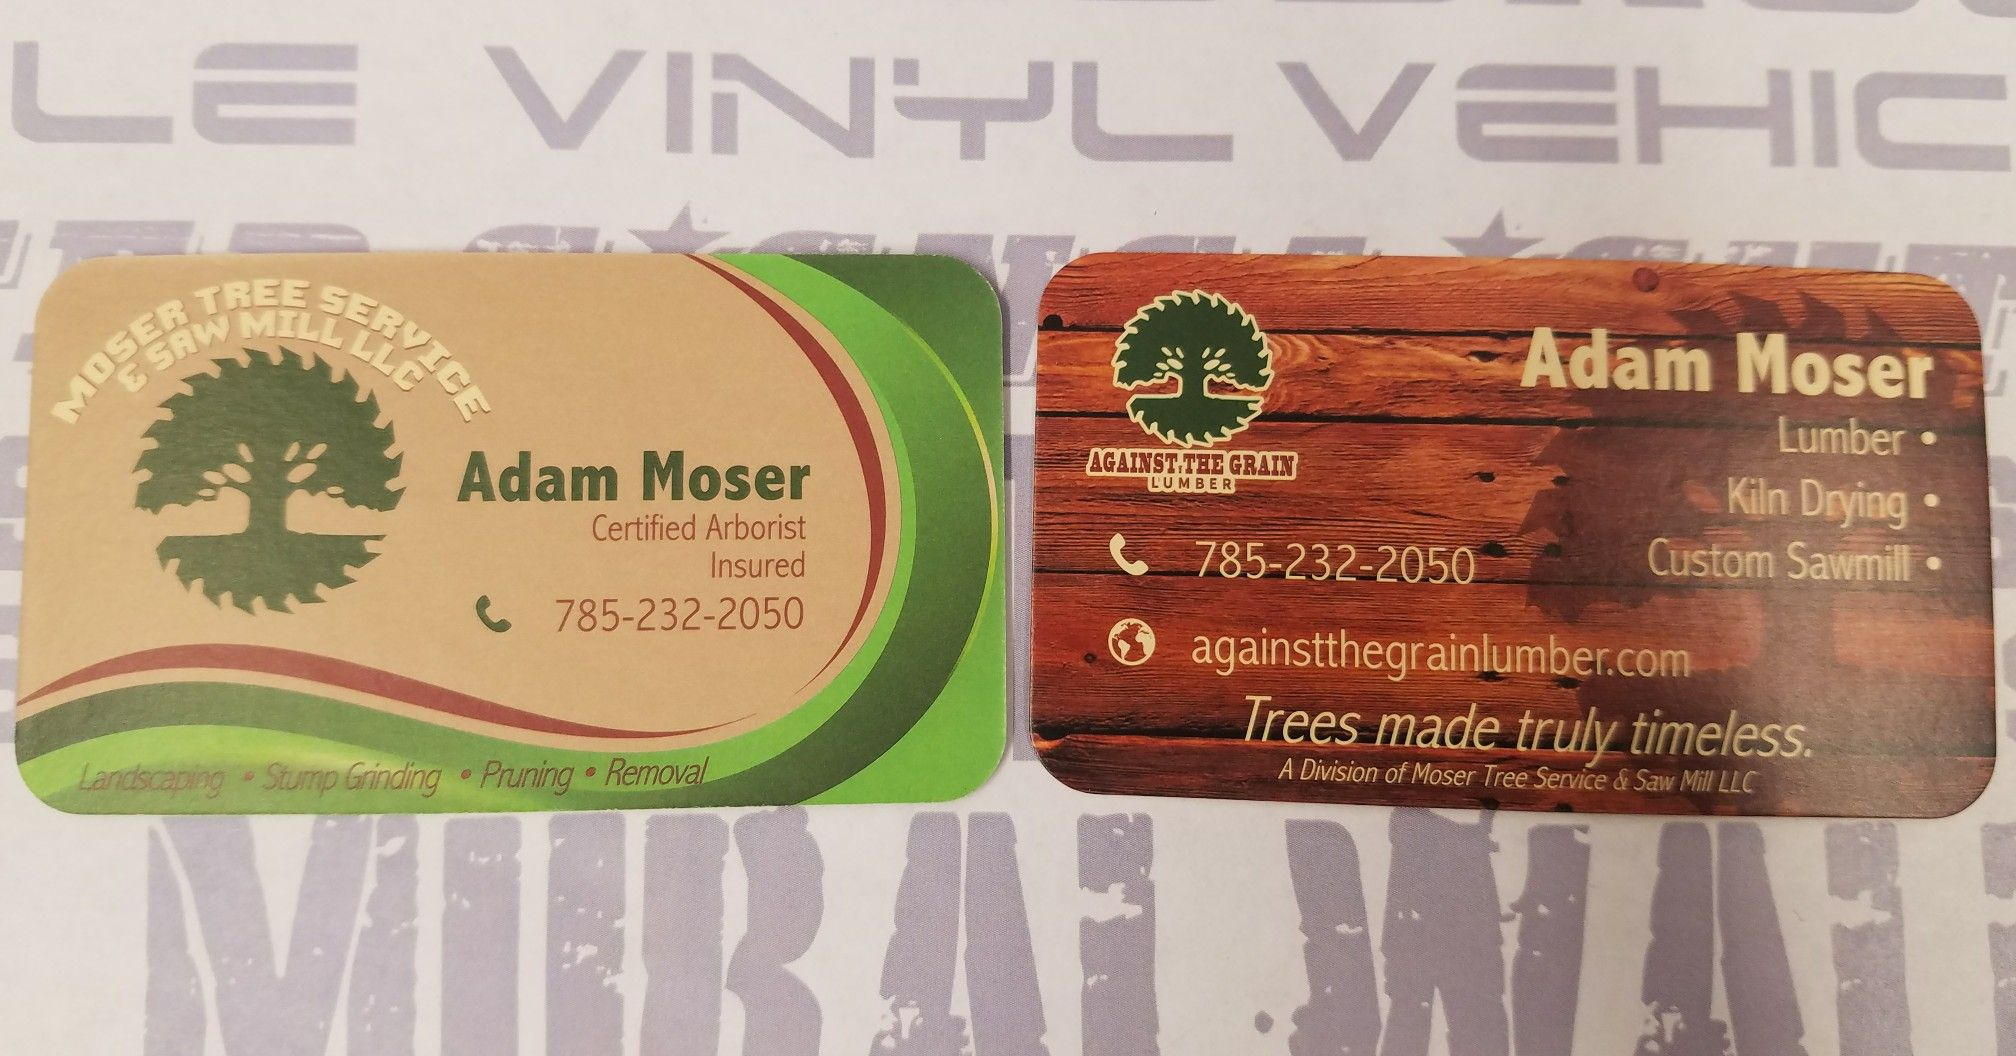 We made these business cards for Moser Tree Service & Saw Mill LLC ...